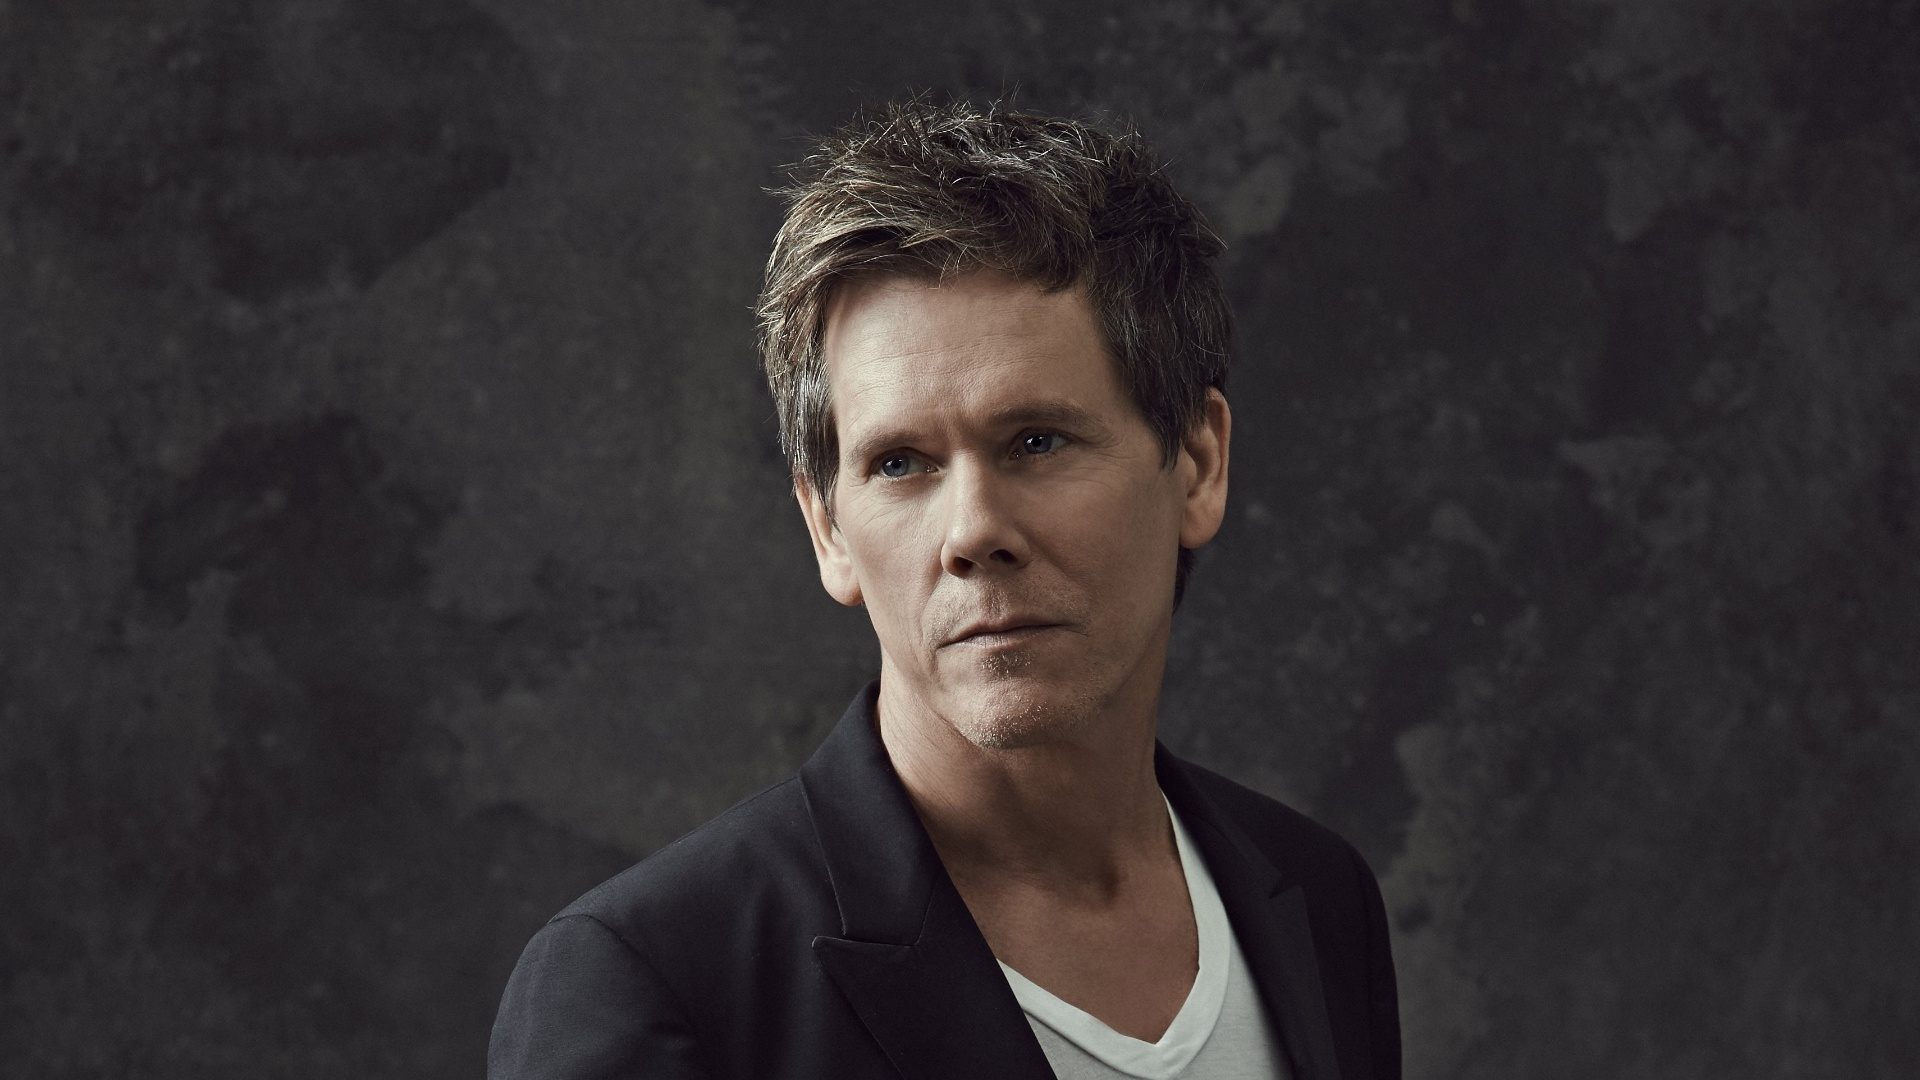 1920x1080 - Kevin Bacon Wallpapers 3